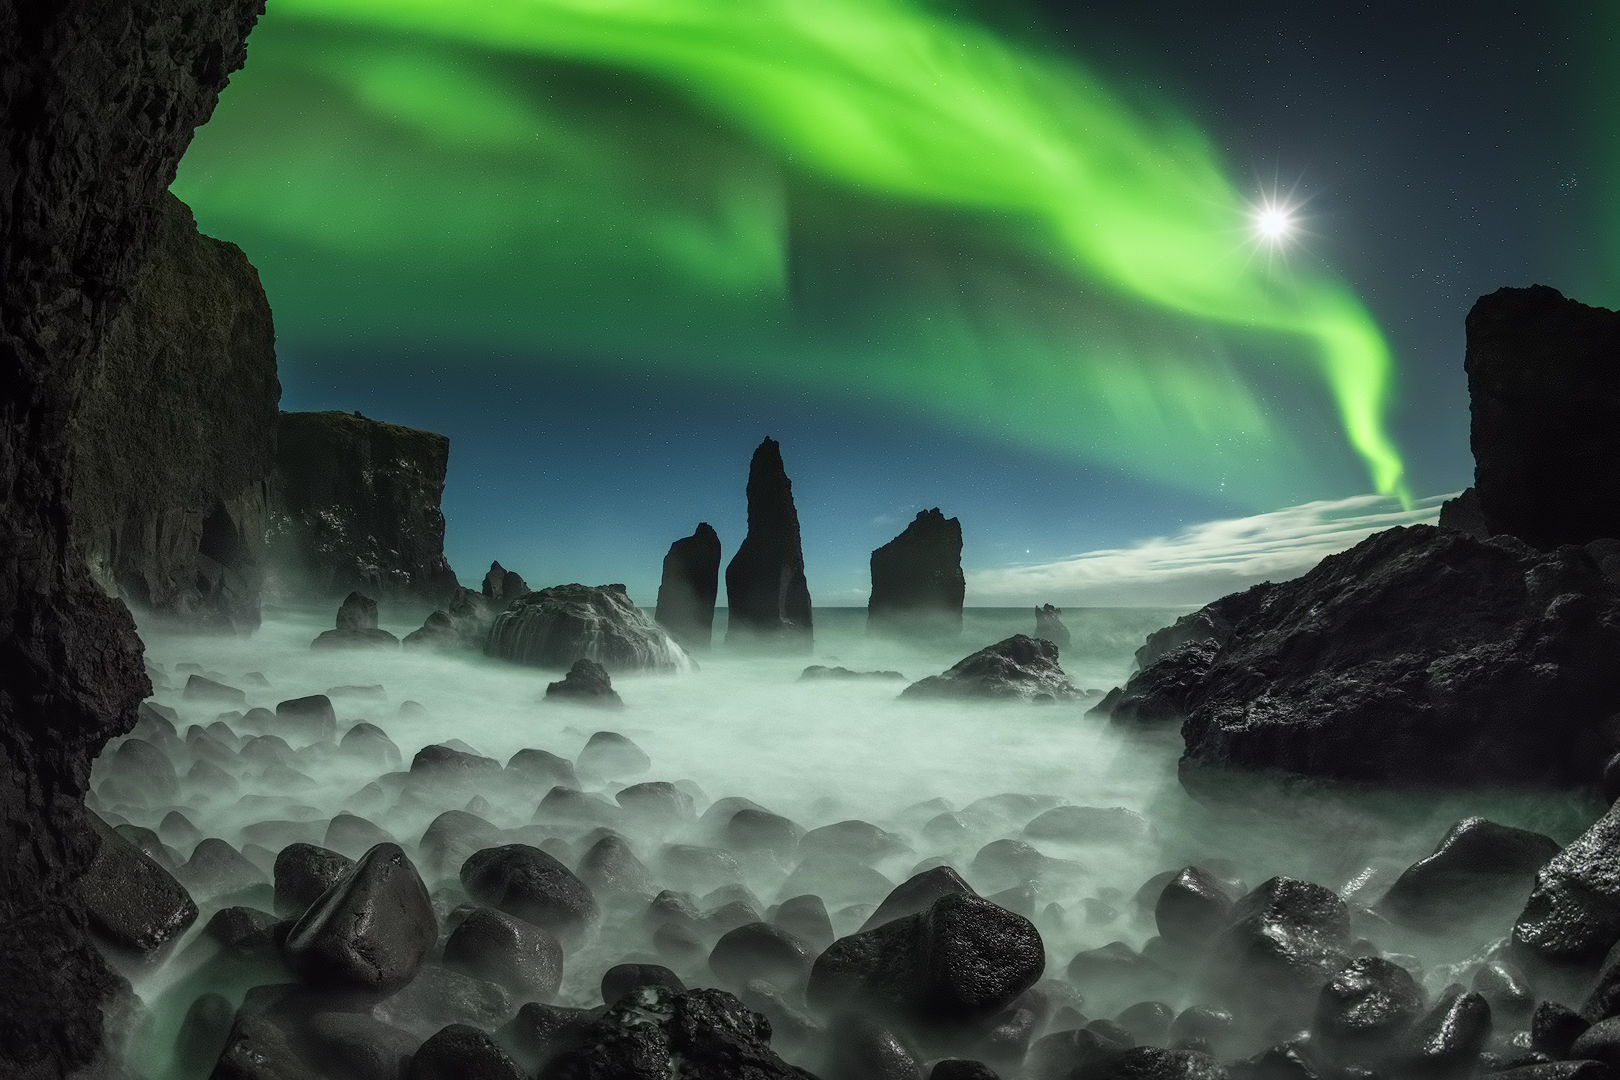 Northern Lights dancing over dark rock formations on the Reykjanes peninsula.